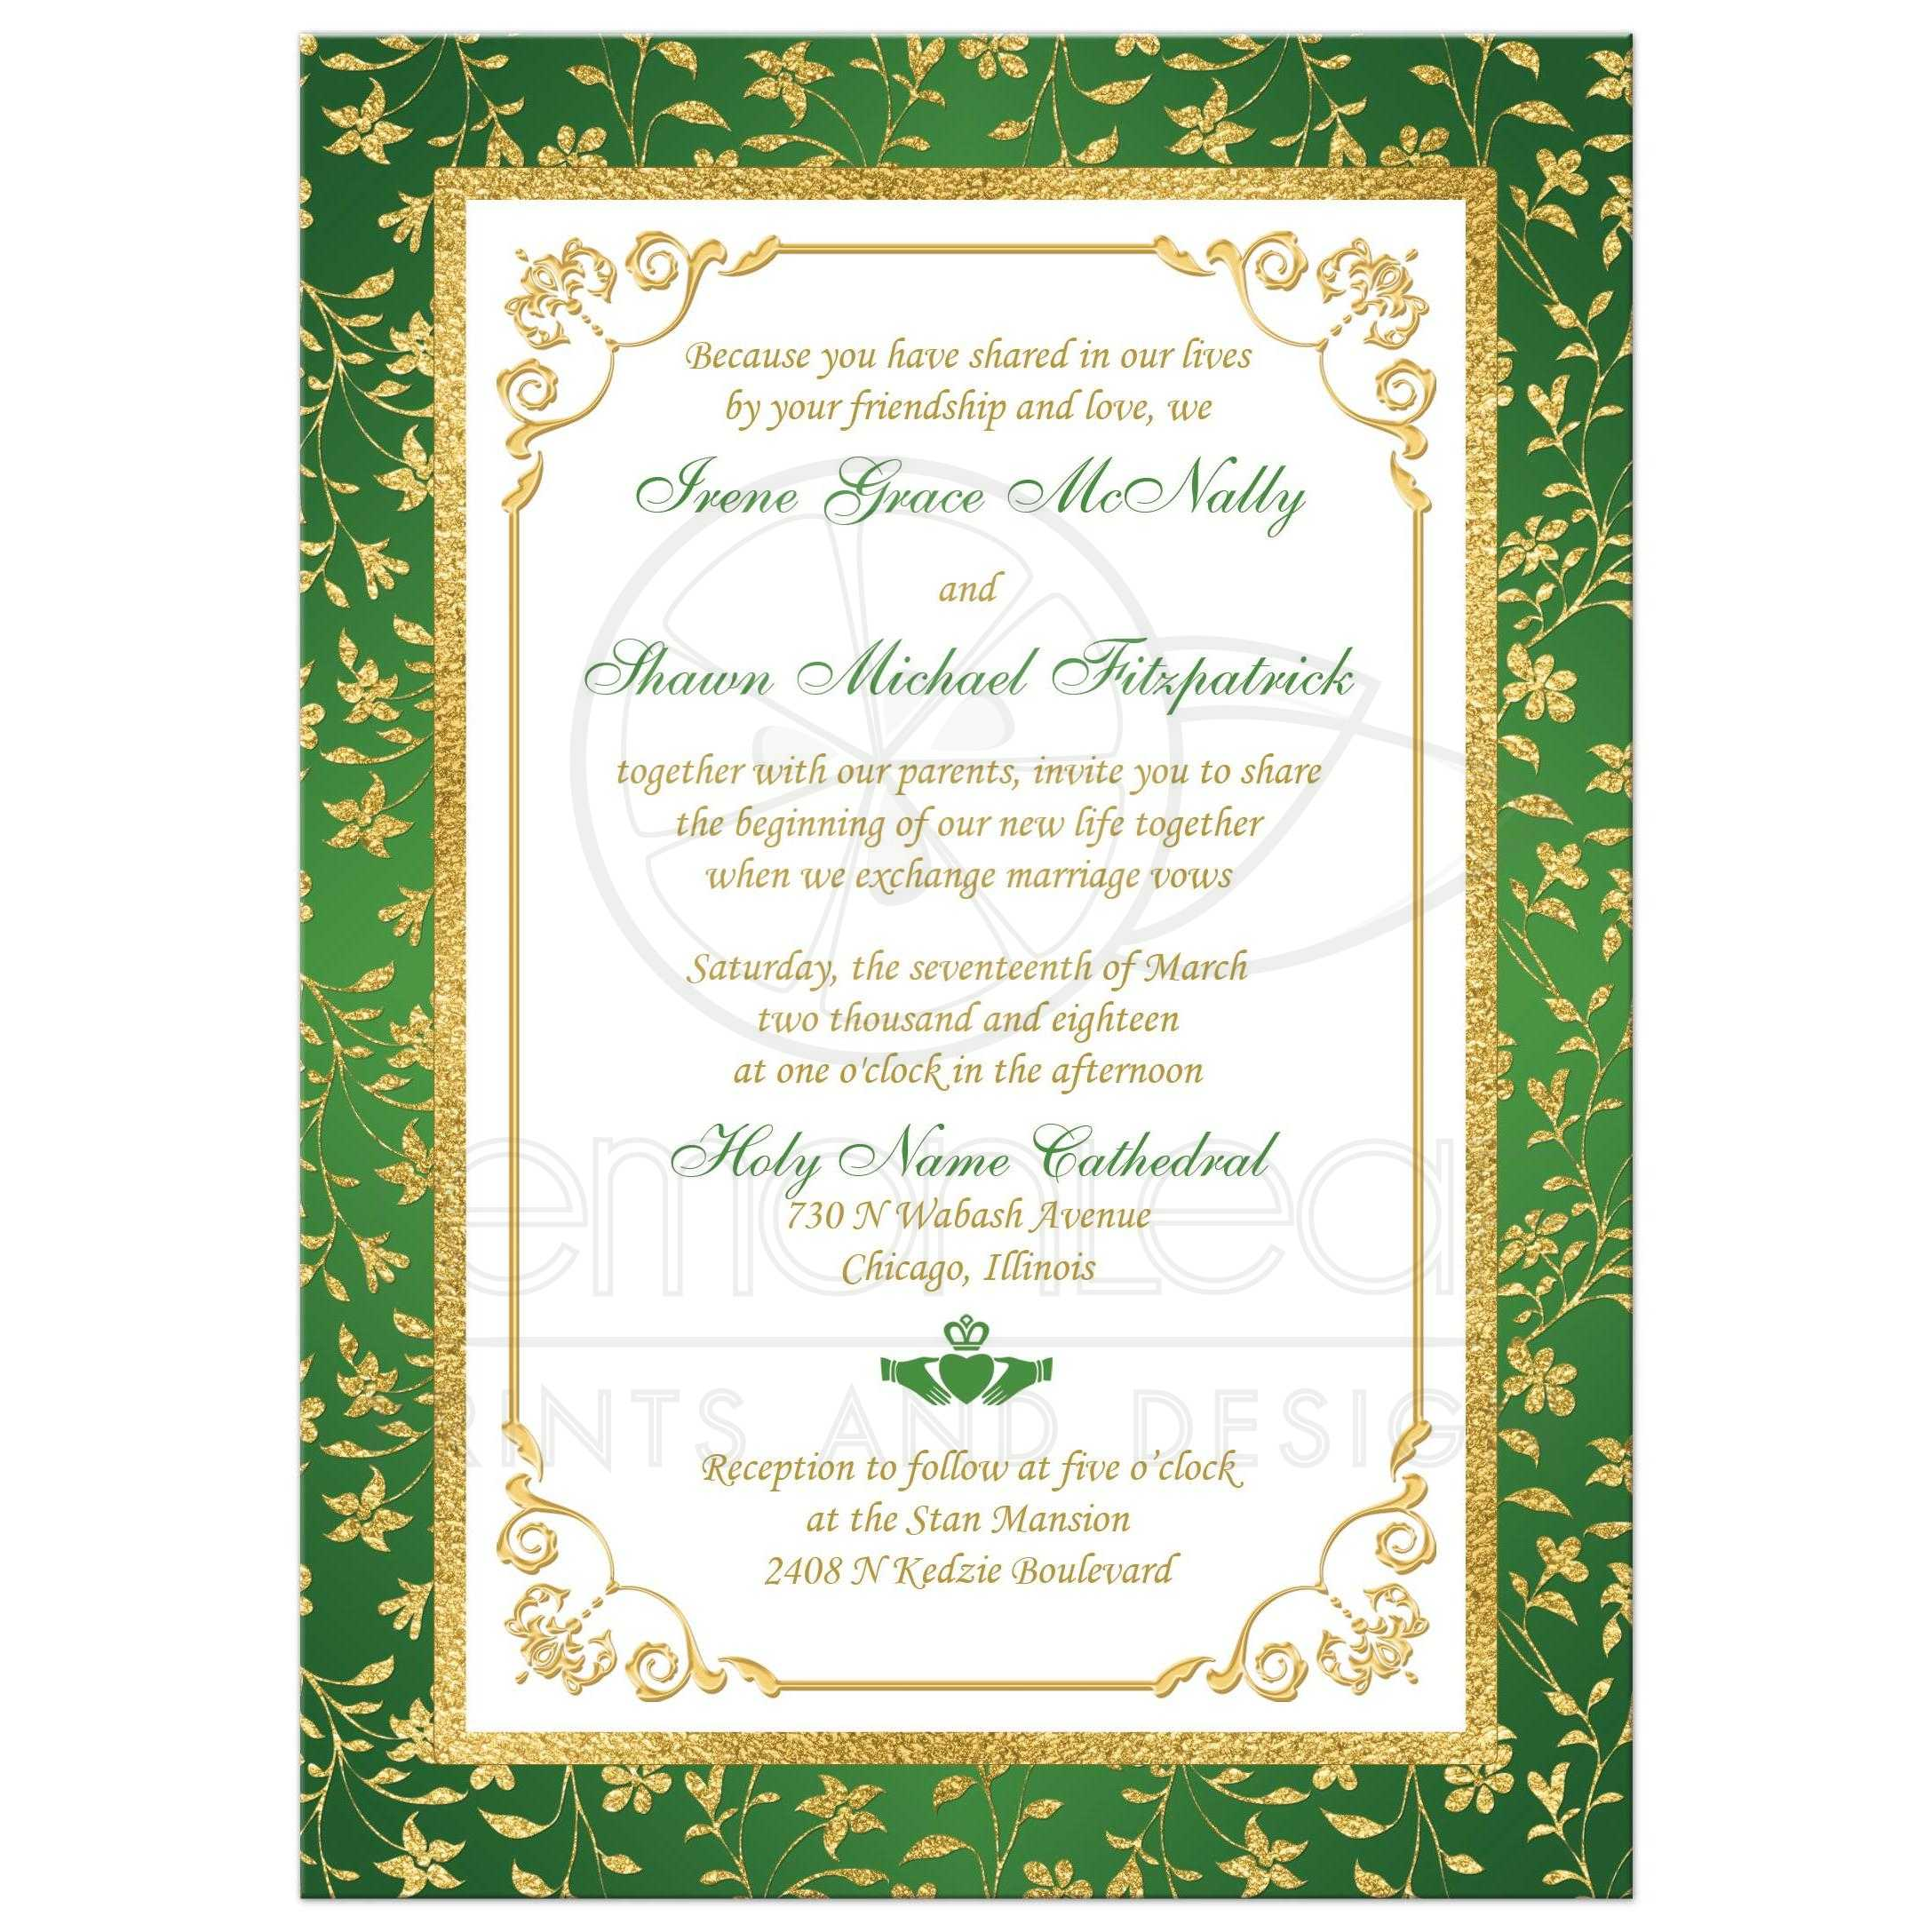 green gold and white floral photo template irish or cletic wedding invitation with faux - Gold And White Wedding Invitations